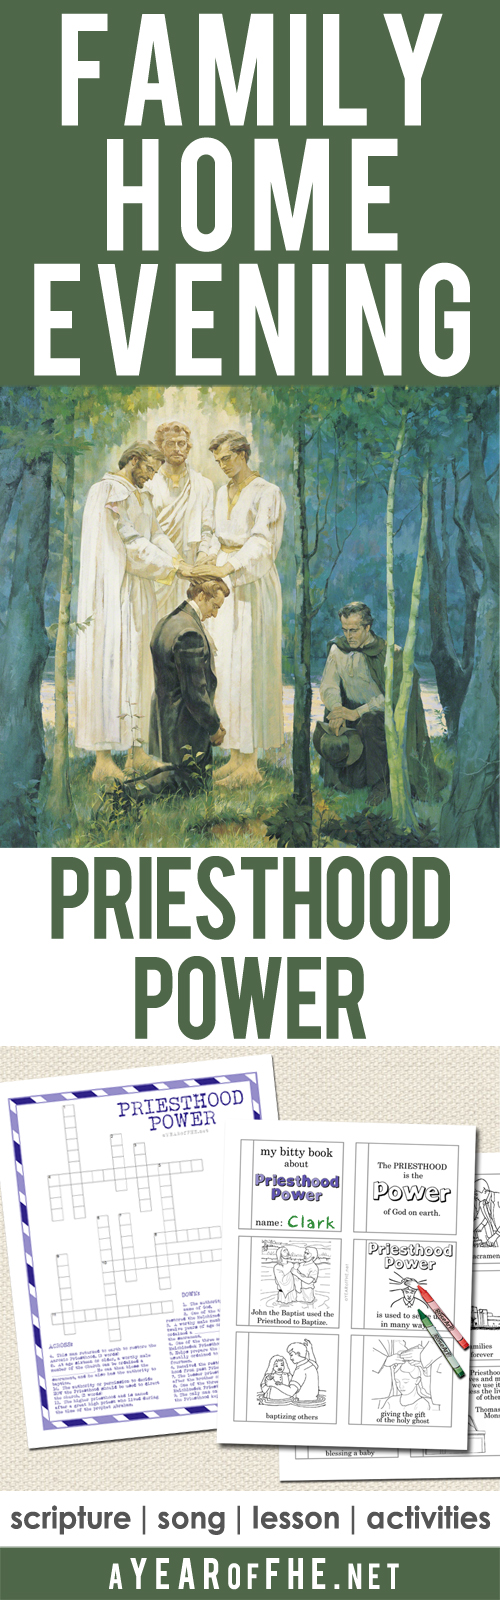 A Free Family Home Evening All About The Power Of Priesthood This Has